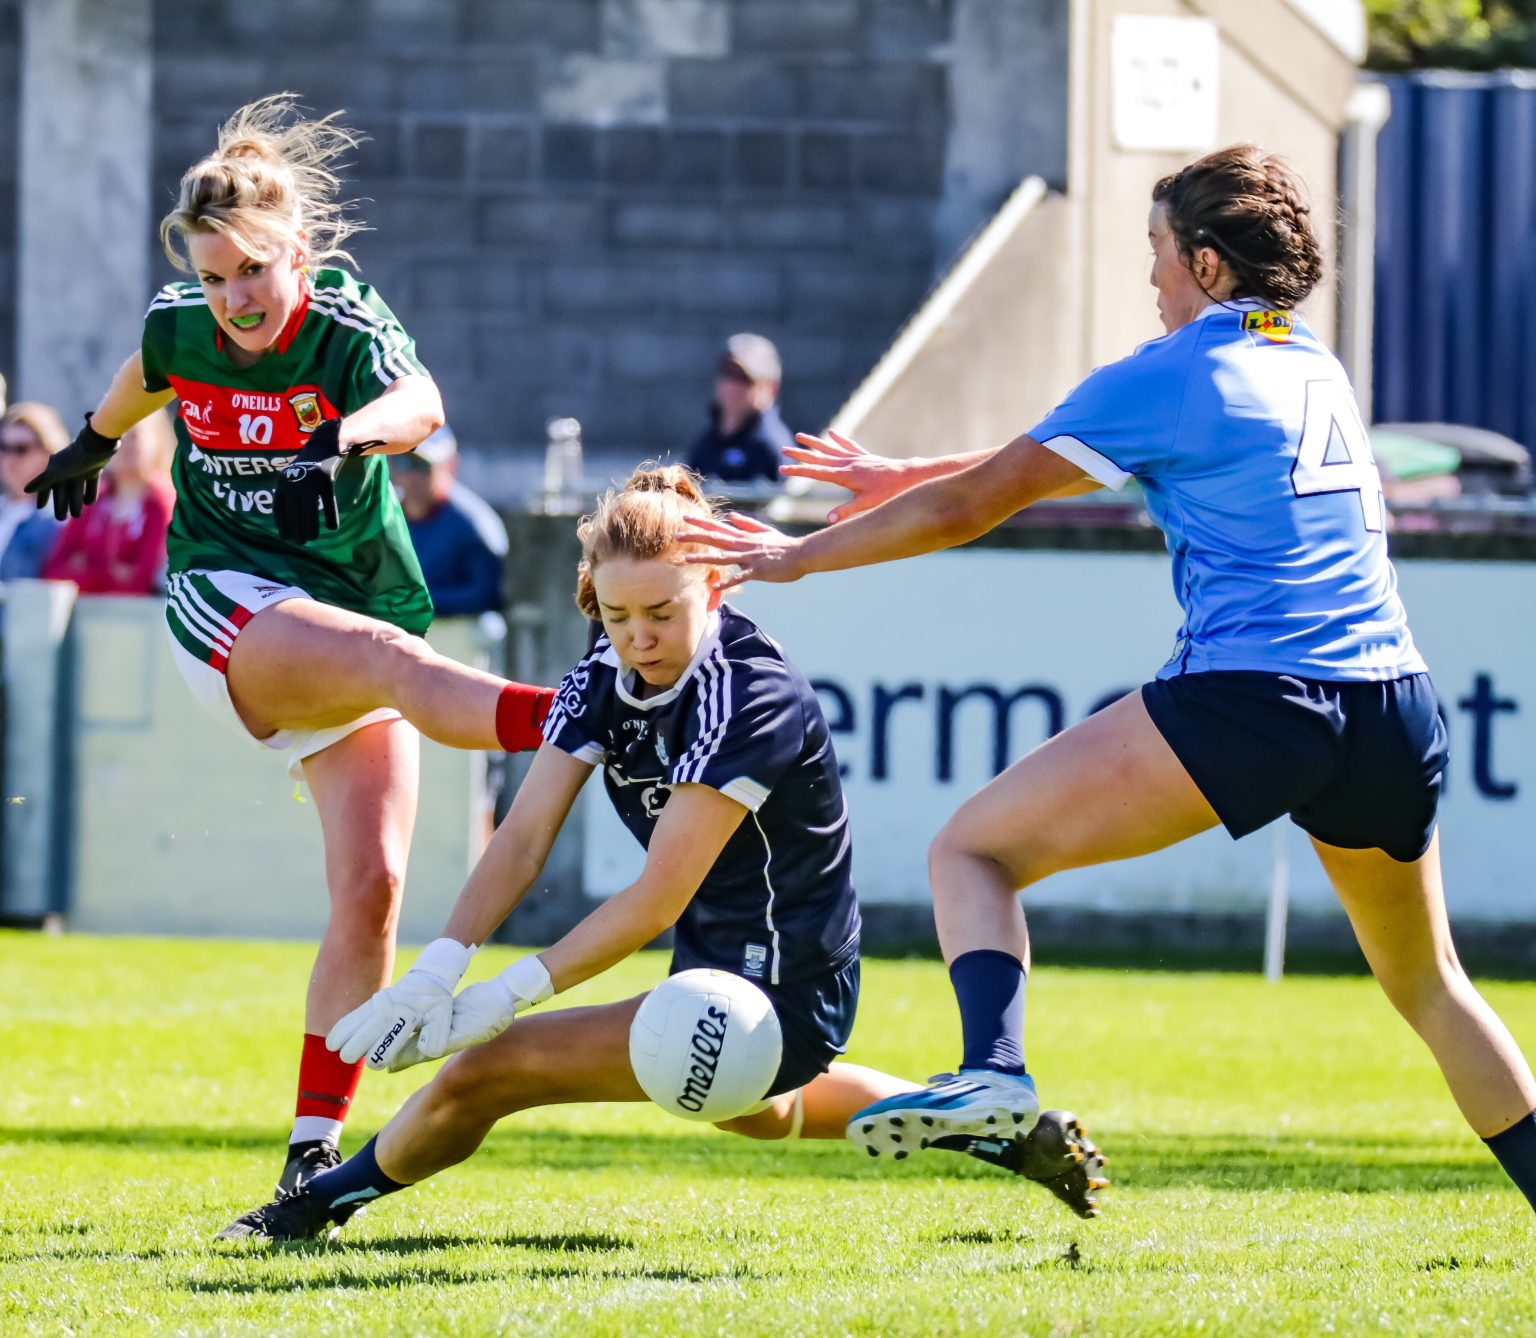 Dublin goalkeeper Ciara Trant in a Navy Jersey and Defender Leah Caffrey In a Sky Blue Jersey block a shot at goal in Dublin's Final Win as they lift first ever Division 1 League Title